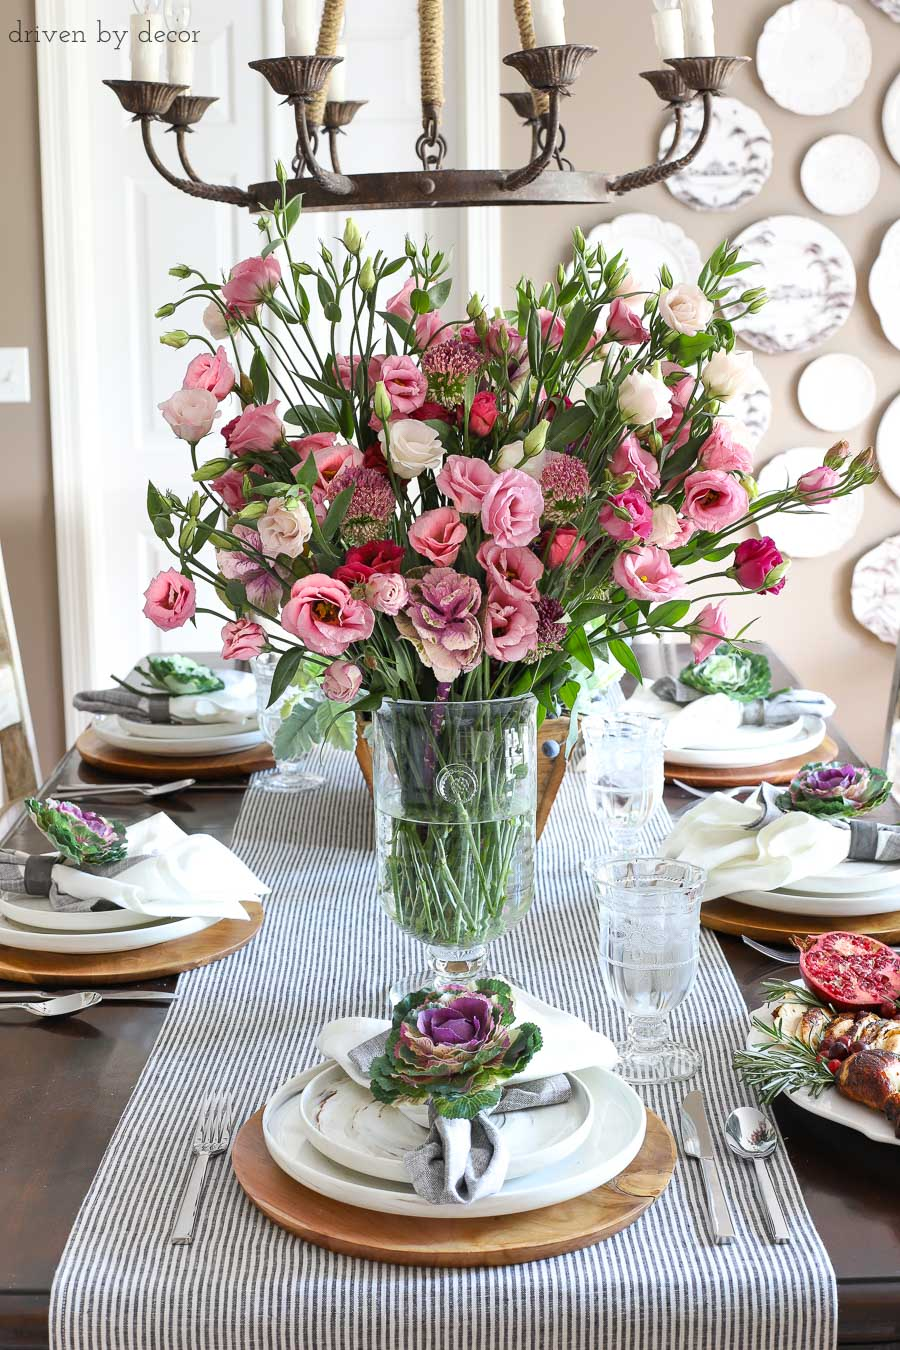 Simple dining room table setting for Thanksgiving with fresh flowers for a centerpiece and faux kale tucked into napkins